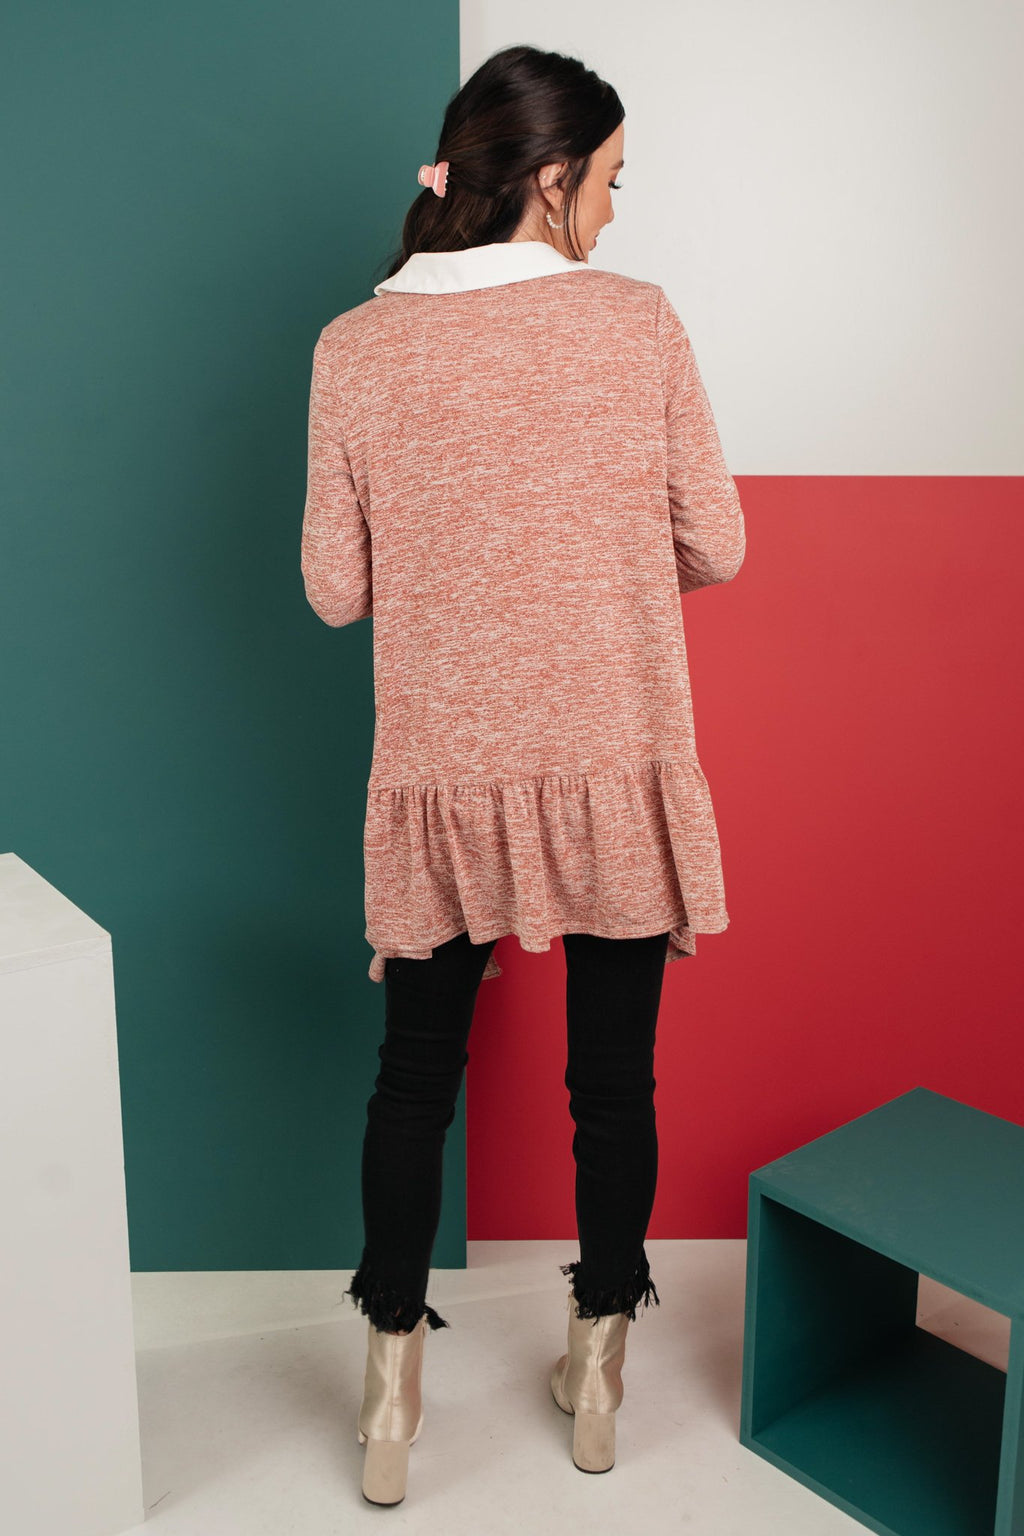 The Avalynn Heathered Cardigan in Crimson-1-5-2021, 1XL, 2XL, 3XL, Group A, Group B, Group C, Group T, Group U, Group X, Group Y, Group Z, Large, Made in the USA, Medium, Small, Tops, XL, XS-Womens Artisan USA American Made Clothing Accessories